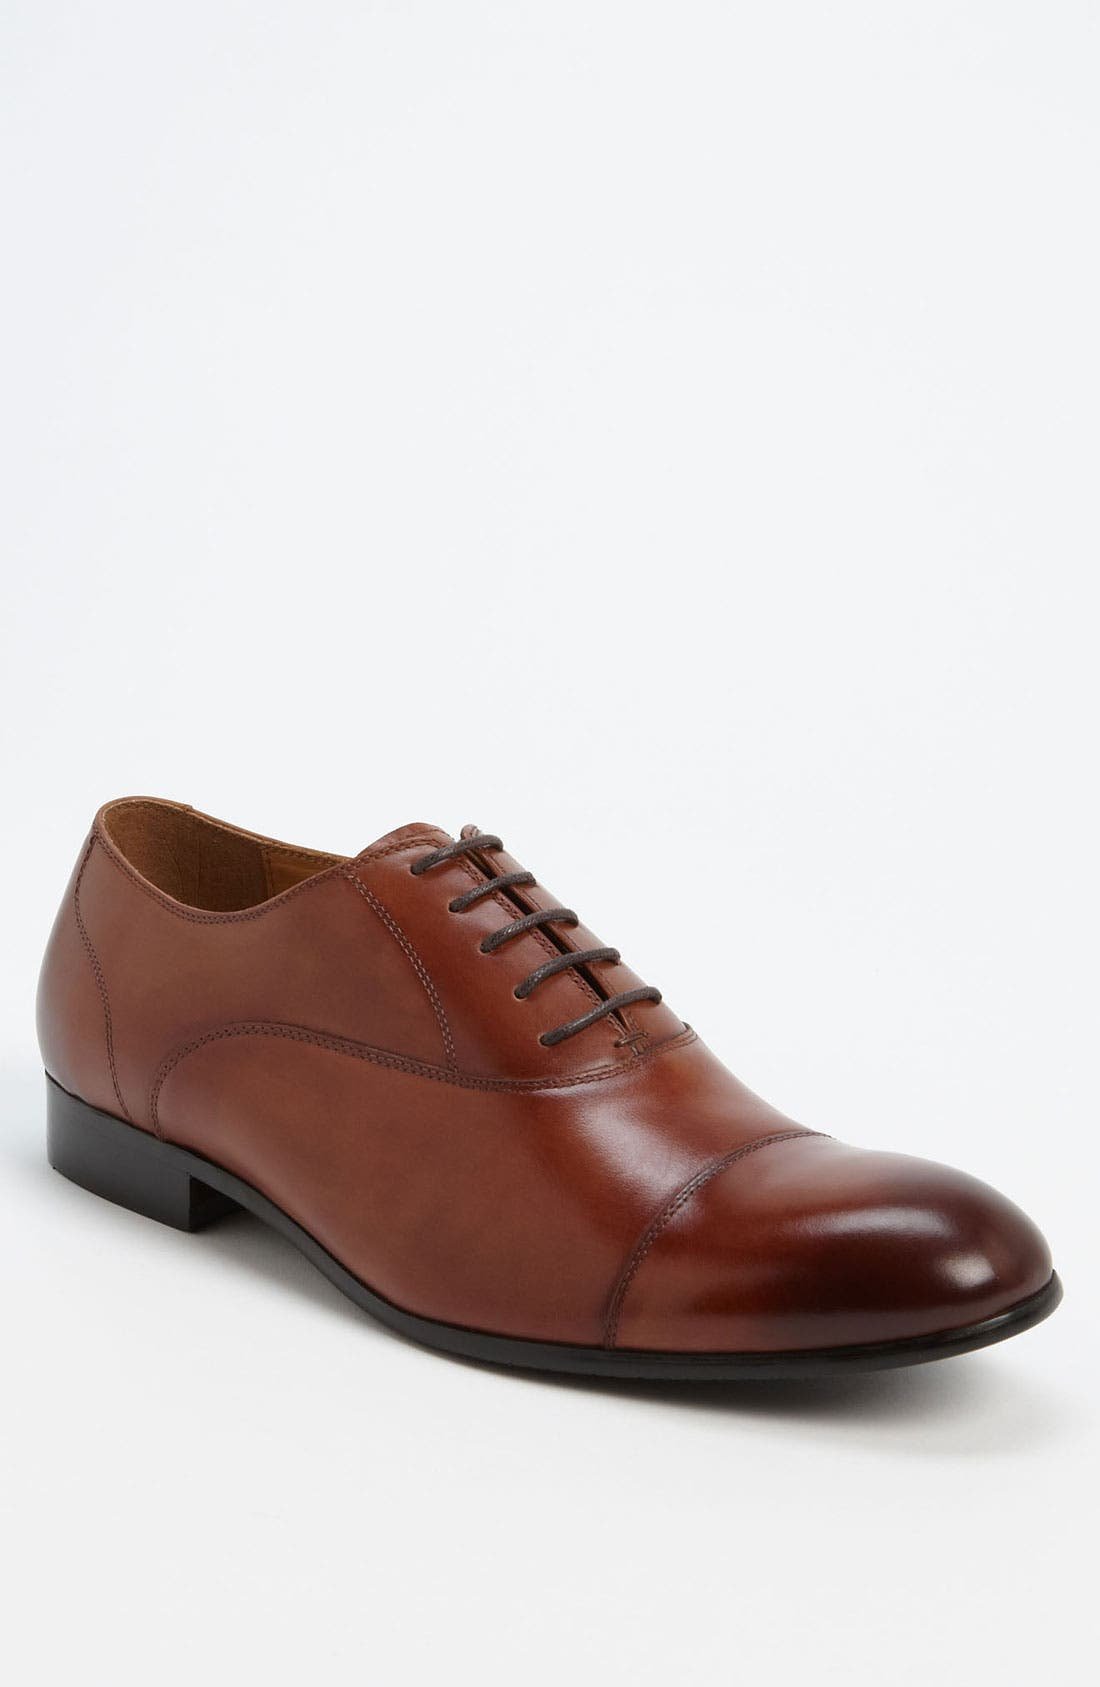 Main Image - ALDO 'Johniken' Cap Toe Oxford (Online Only)